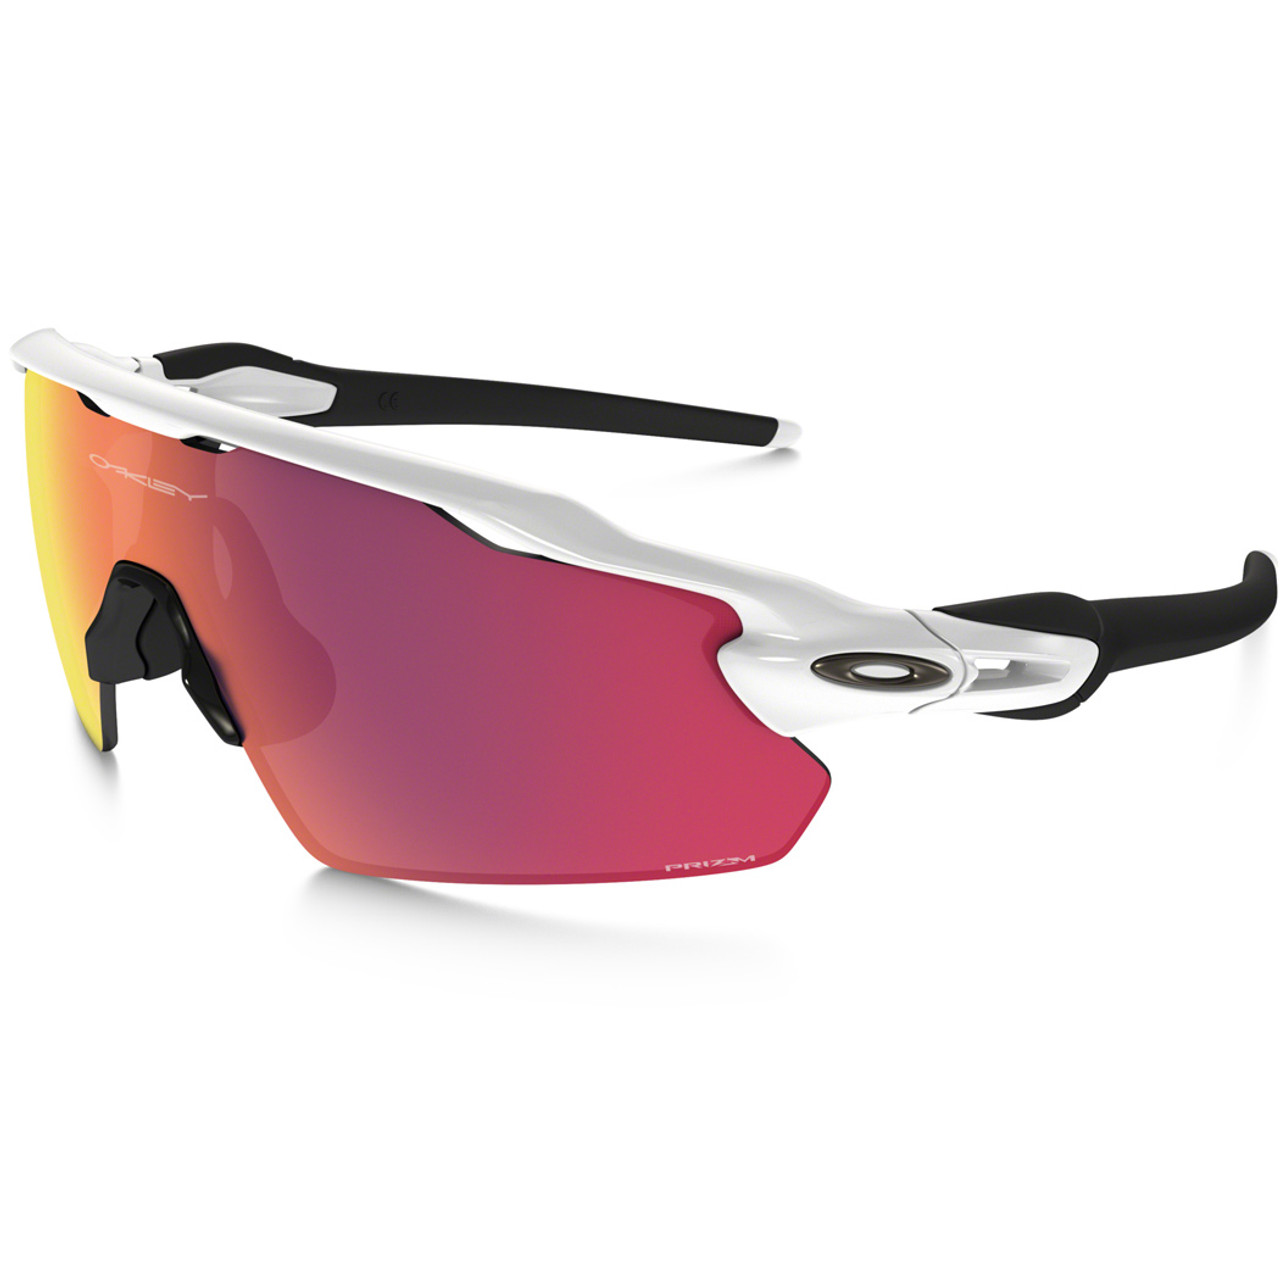 9437e41c5b Oakley Sunglasses - Radar EV Pitch - White Prizm Baseball Outfield - Surf  and Dirt